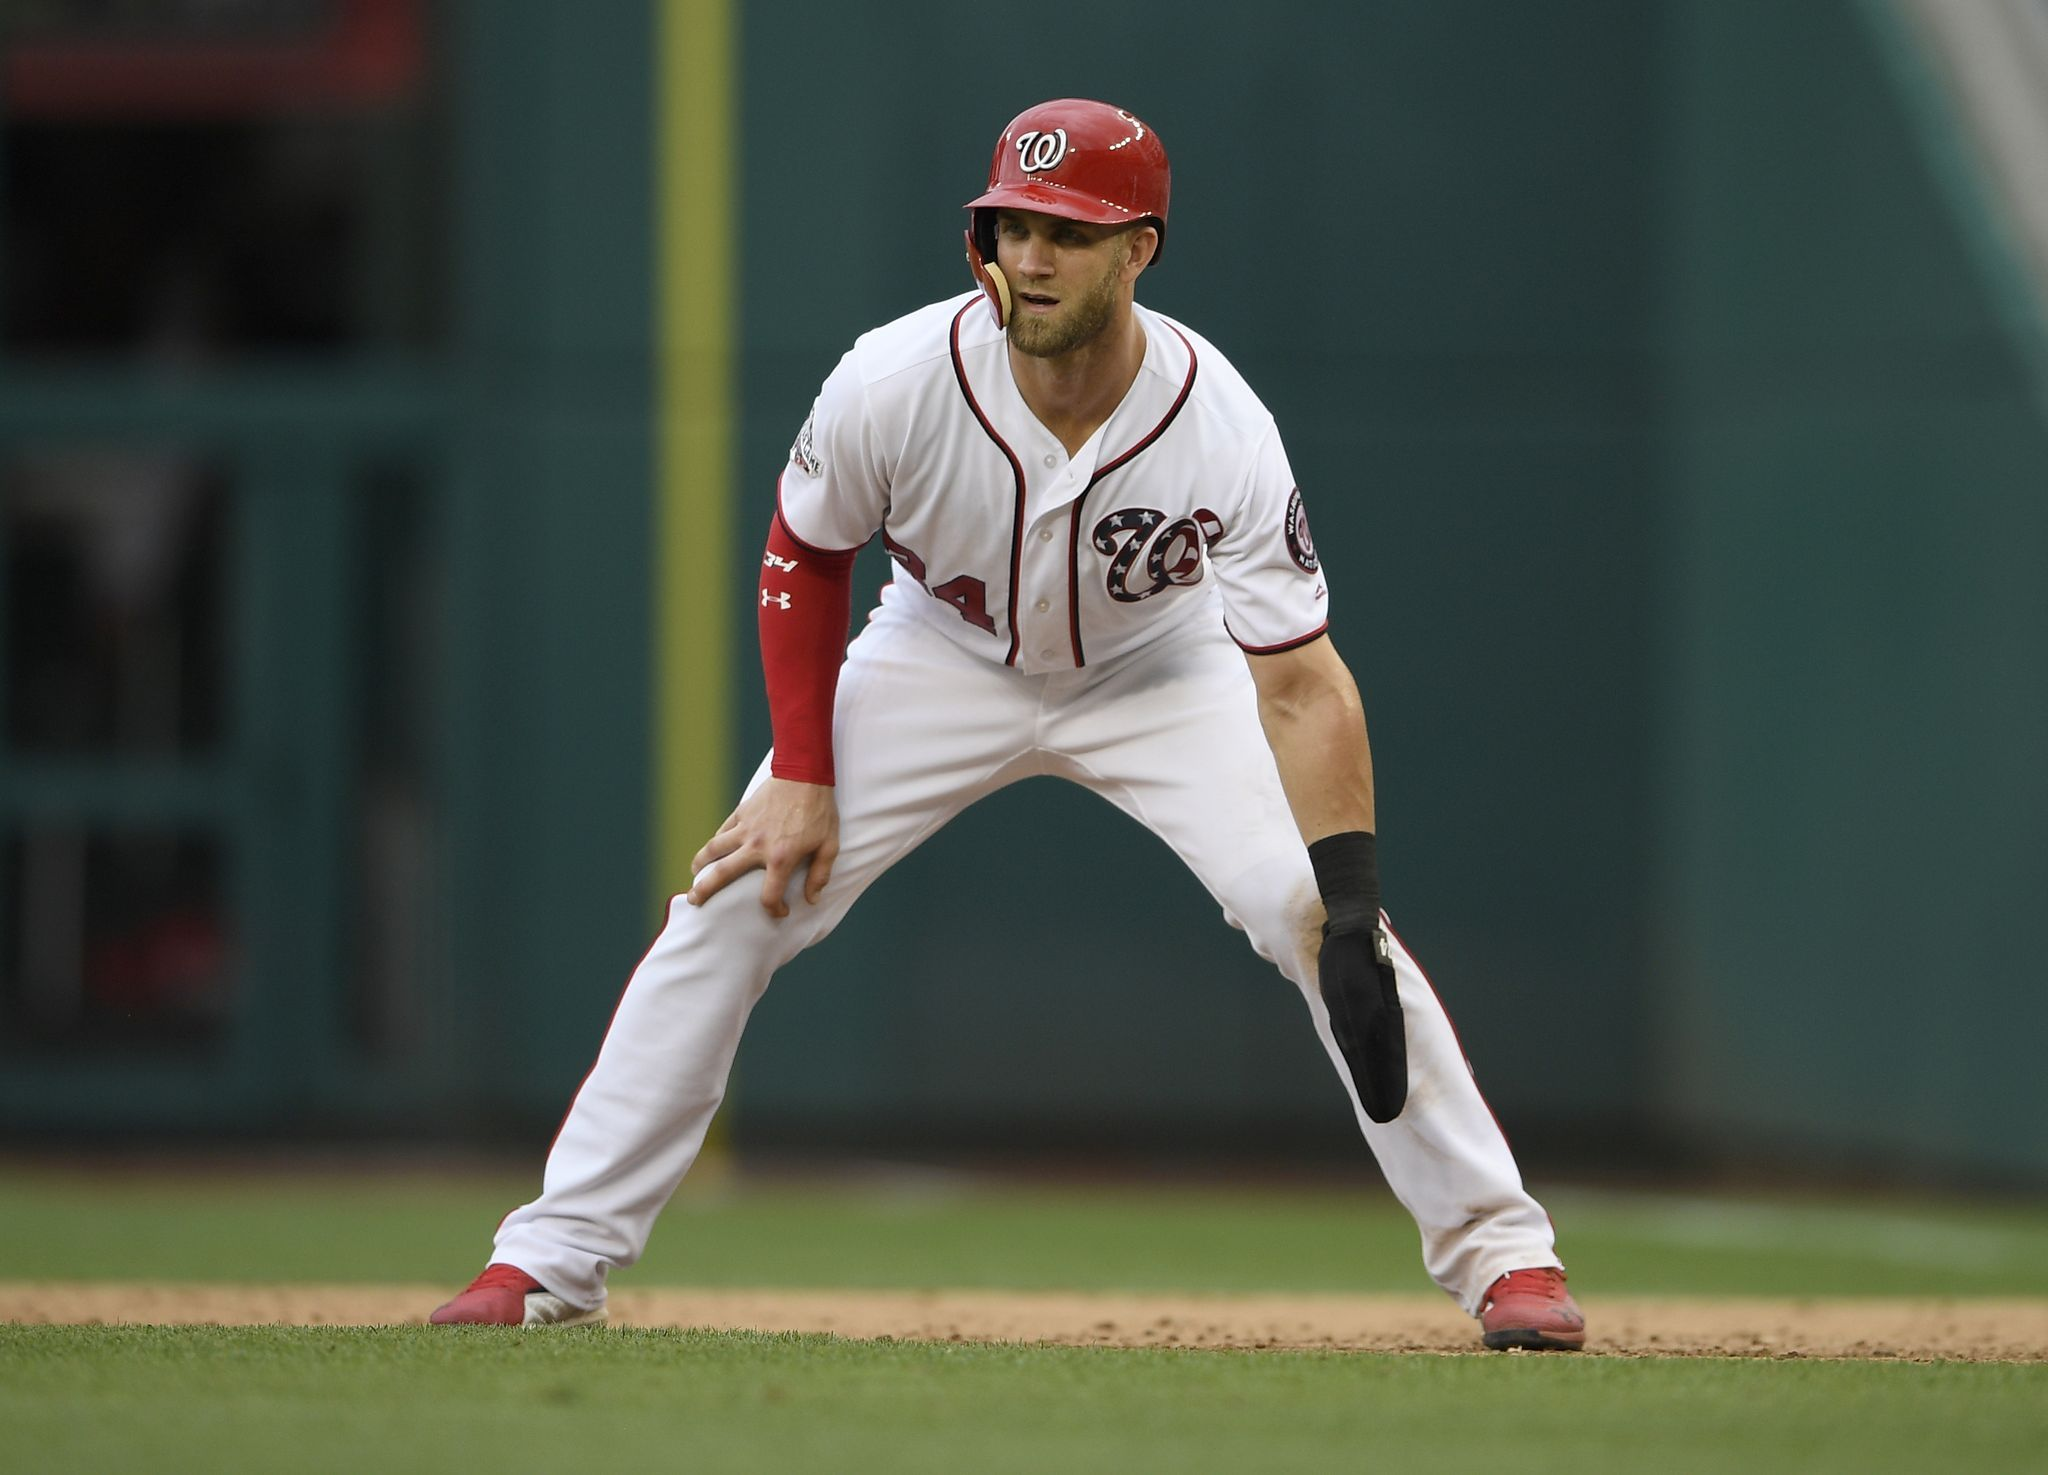 Bryce Harper Nationals Seem Mutually Interested In Reunion Reports Bryce Harper Free Agent National